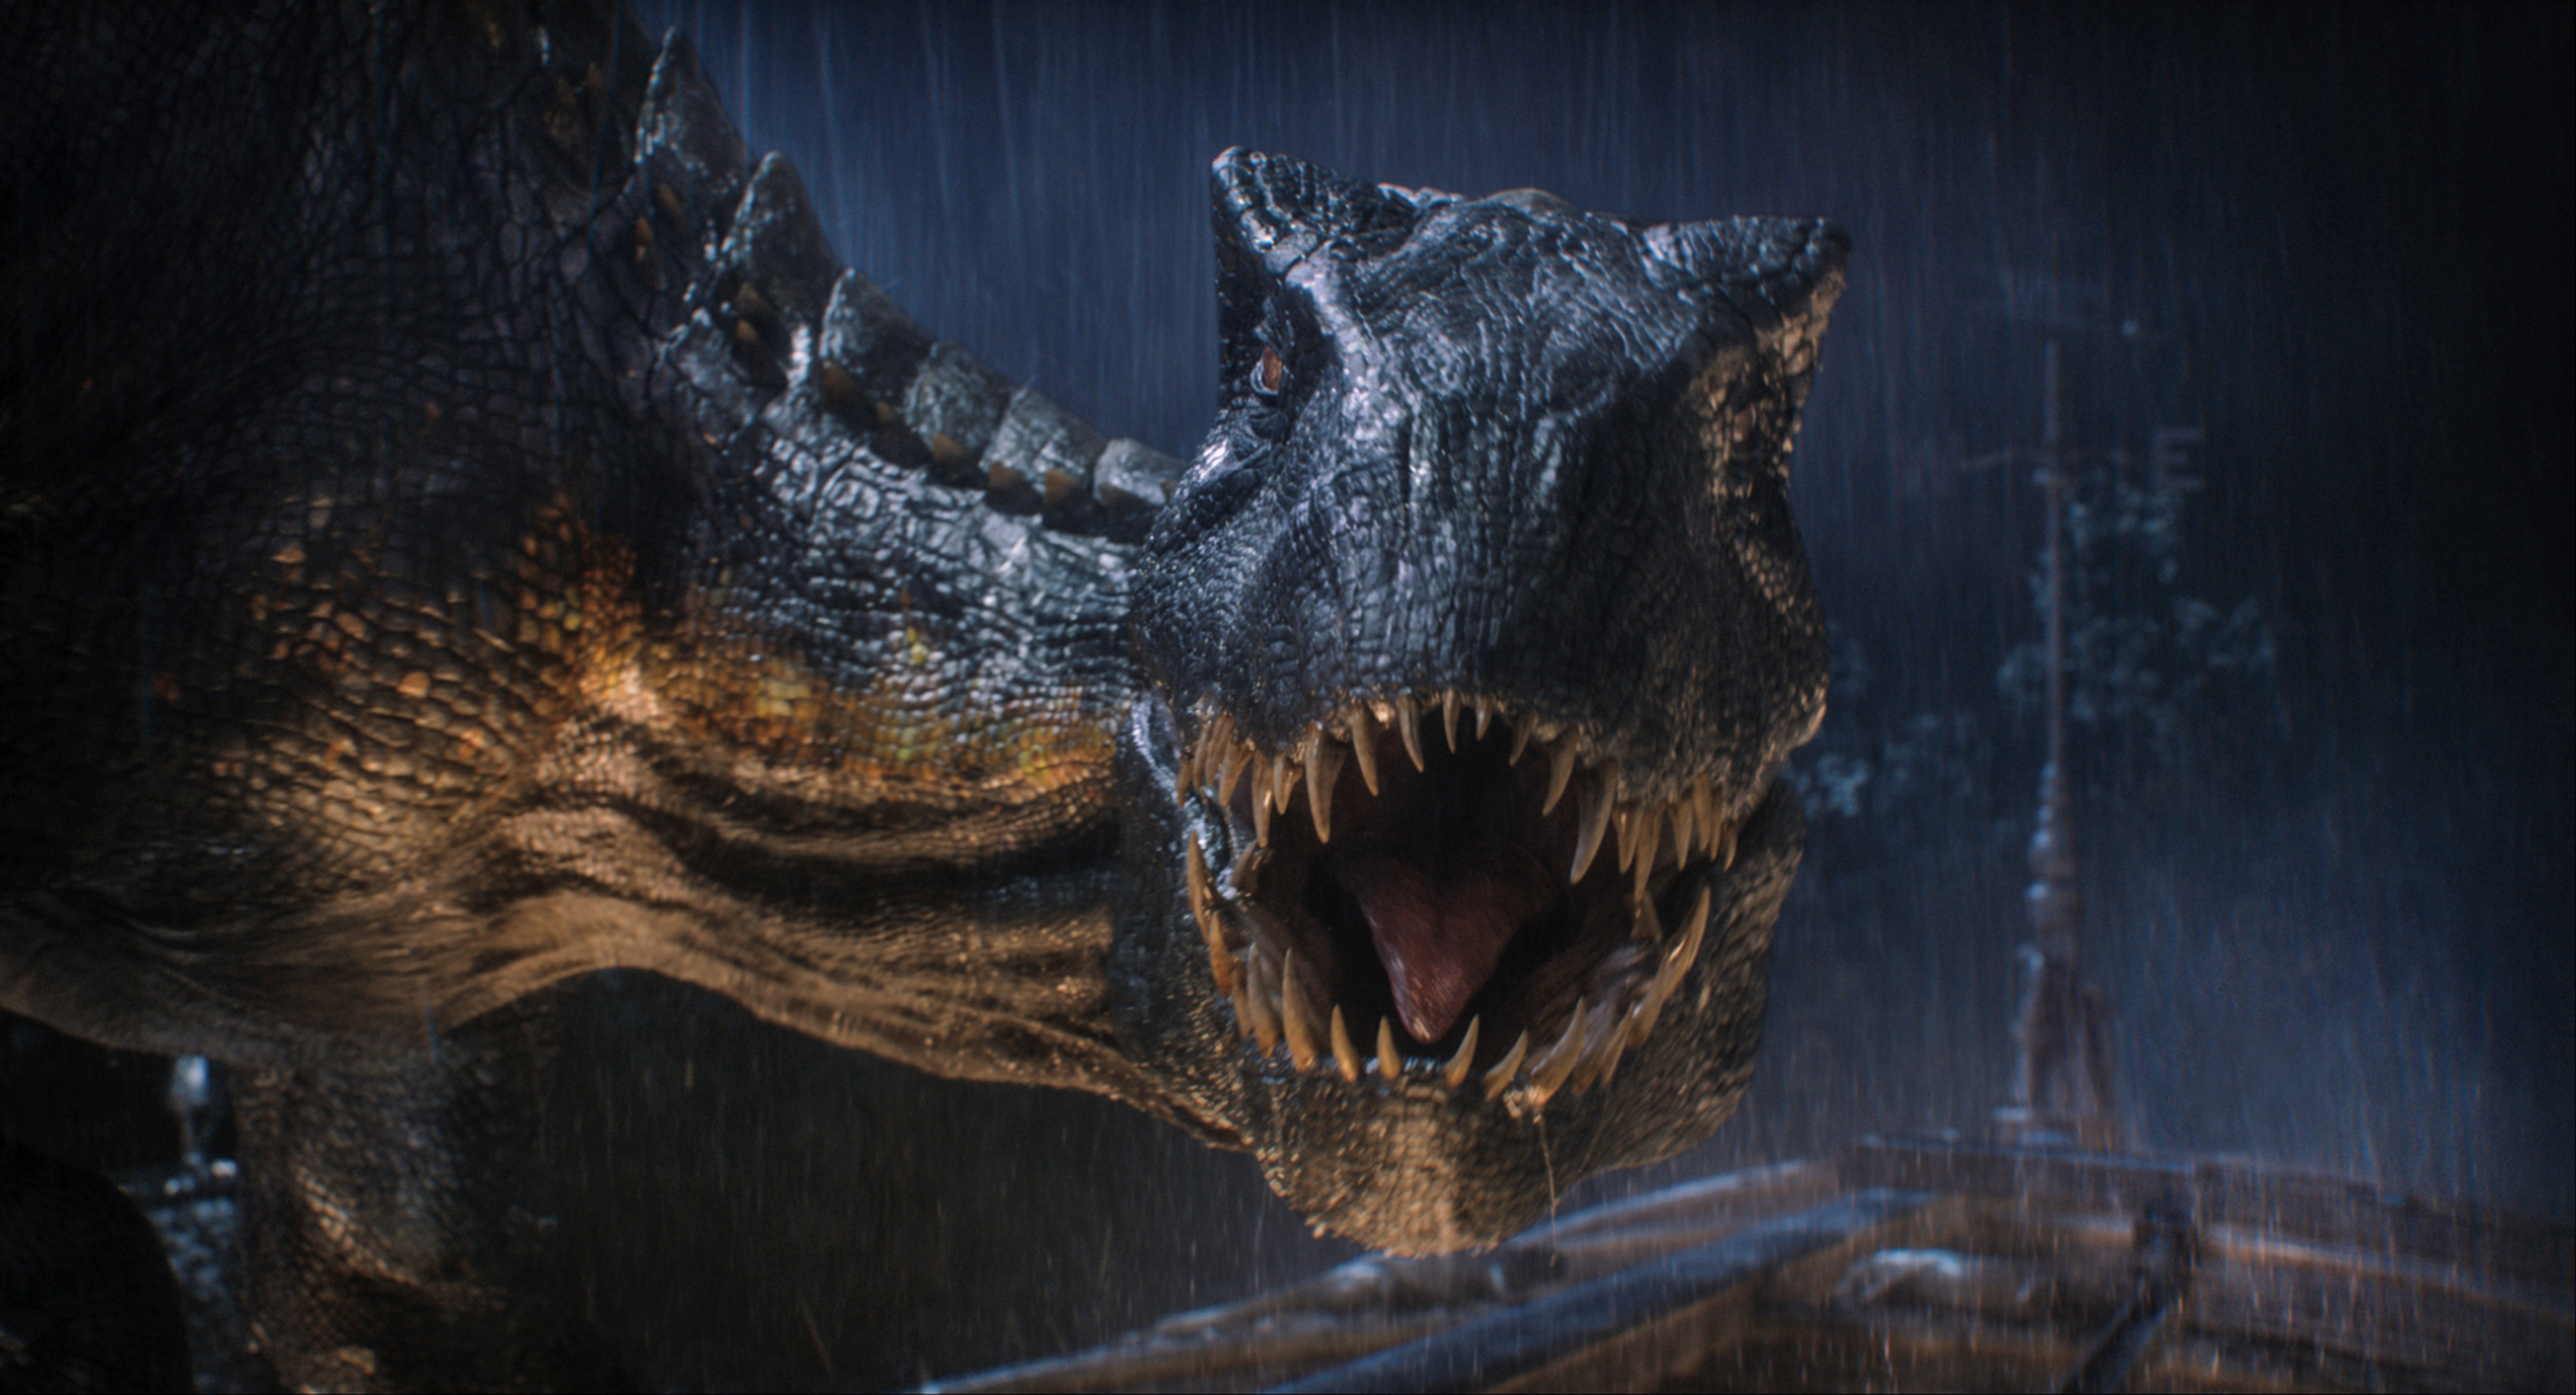 Jurassic World: Fallen Kingdom needed more dinosaurs jumping away from explosions